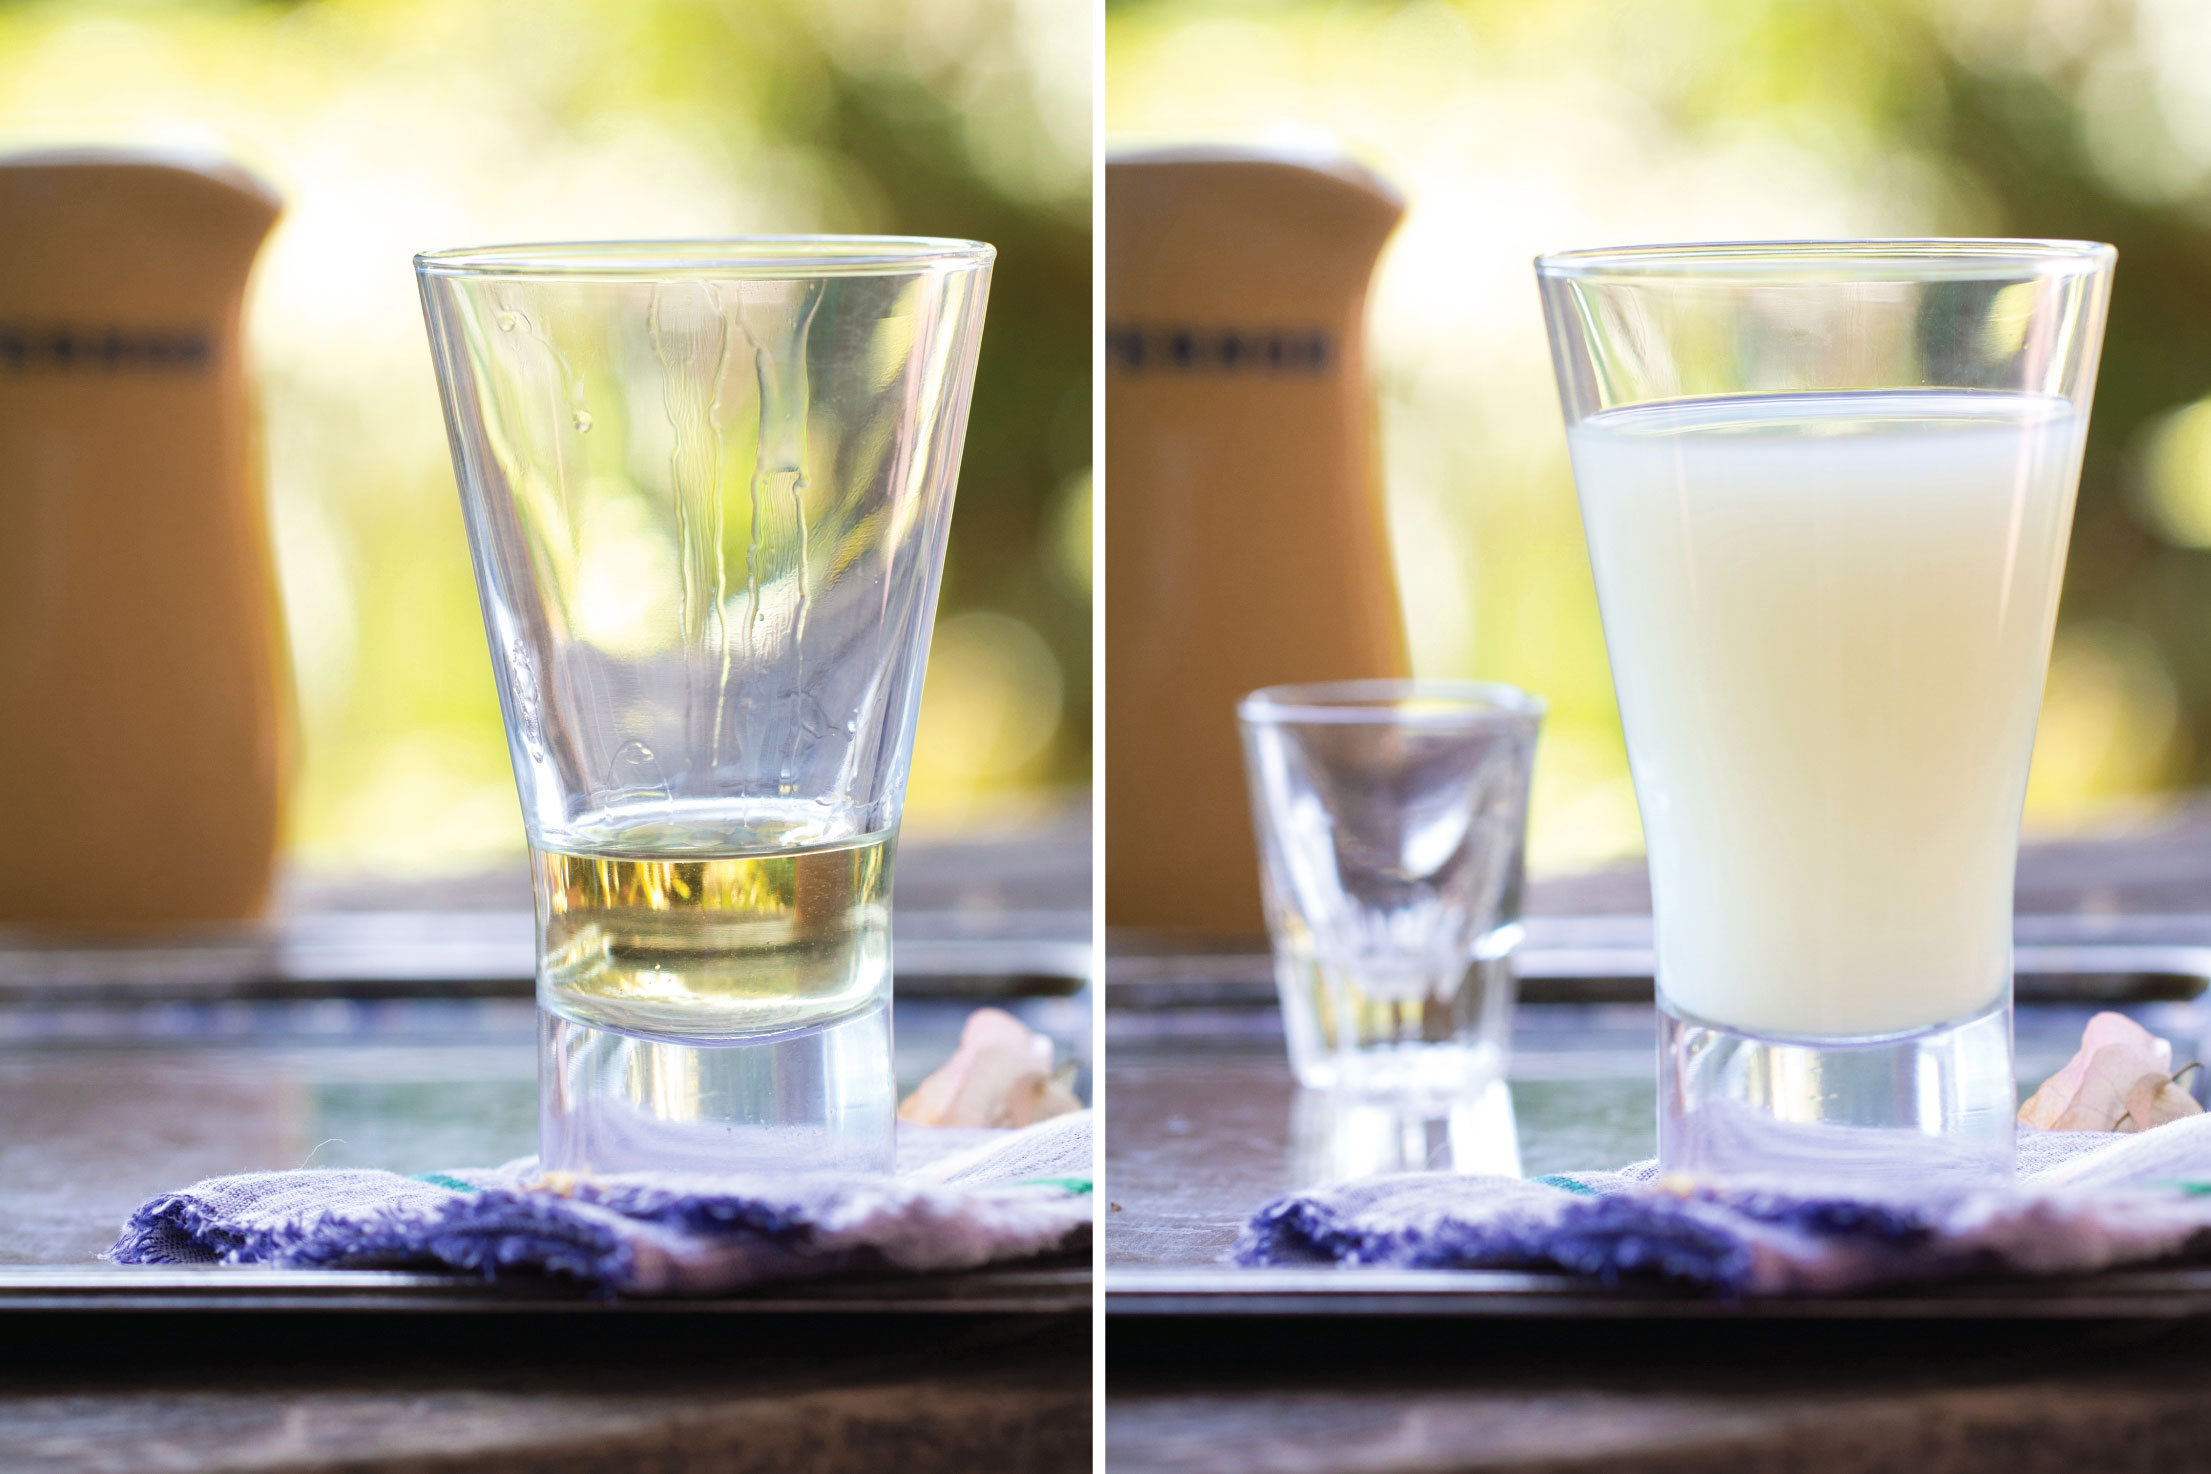 How to Drink Pastis Like the French